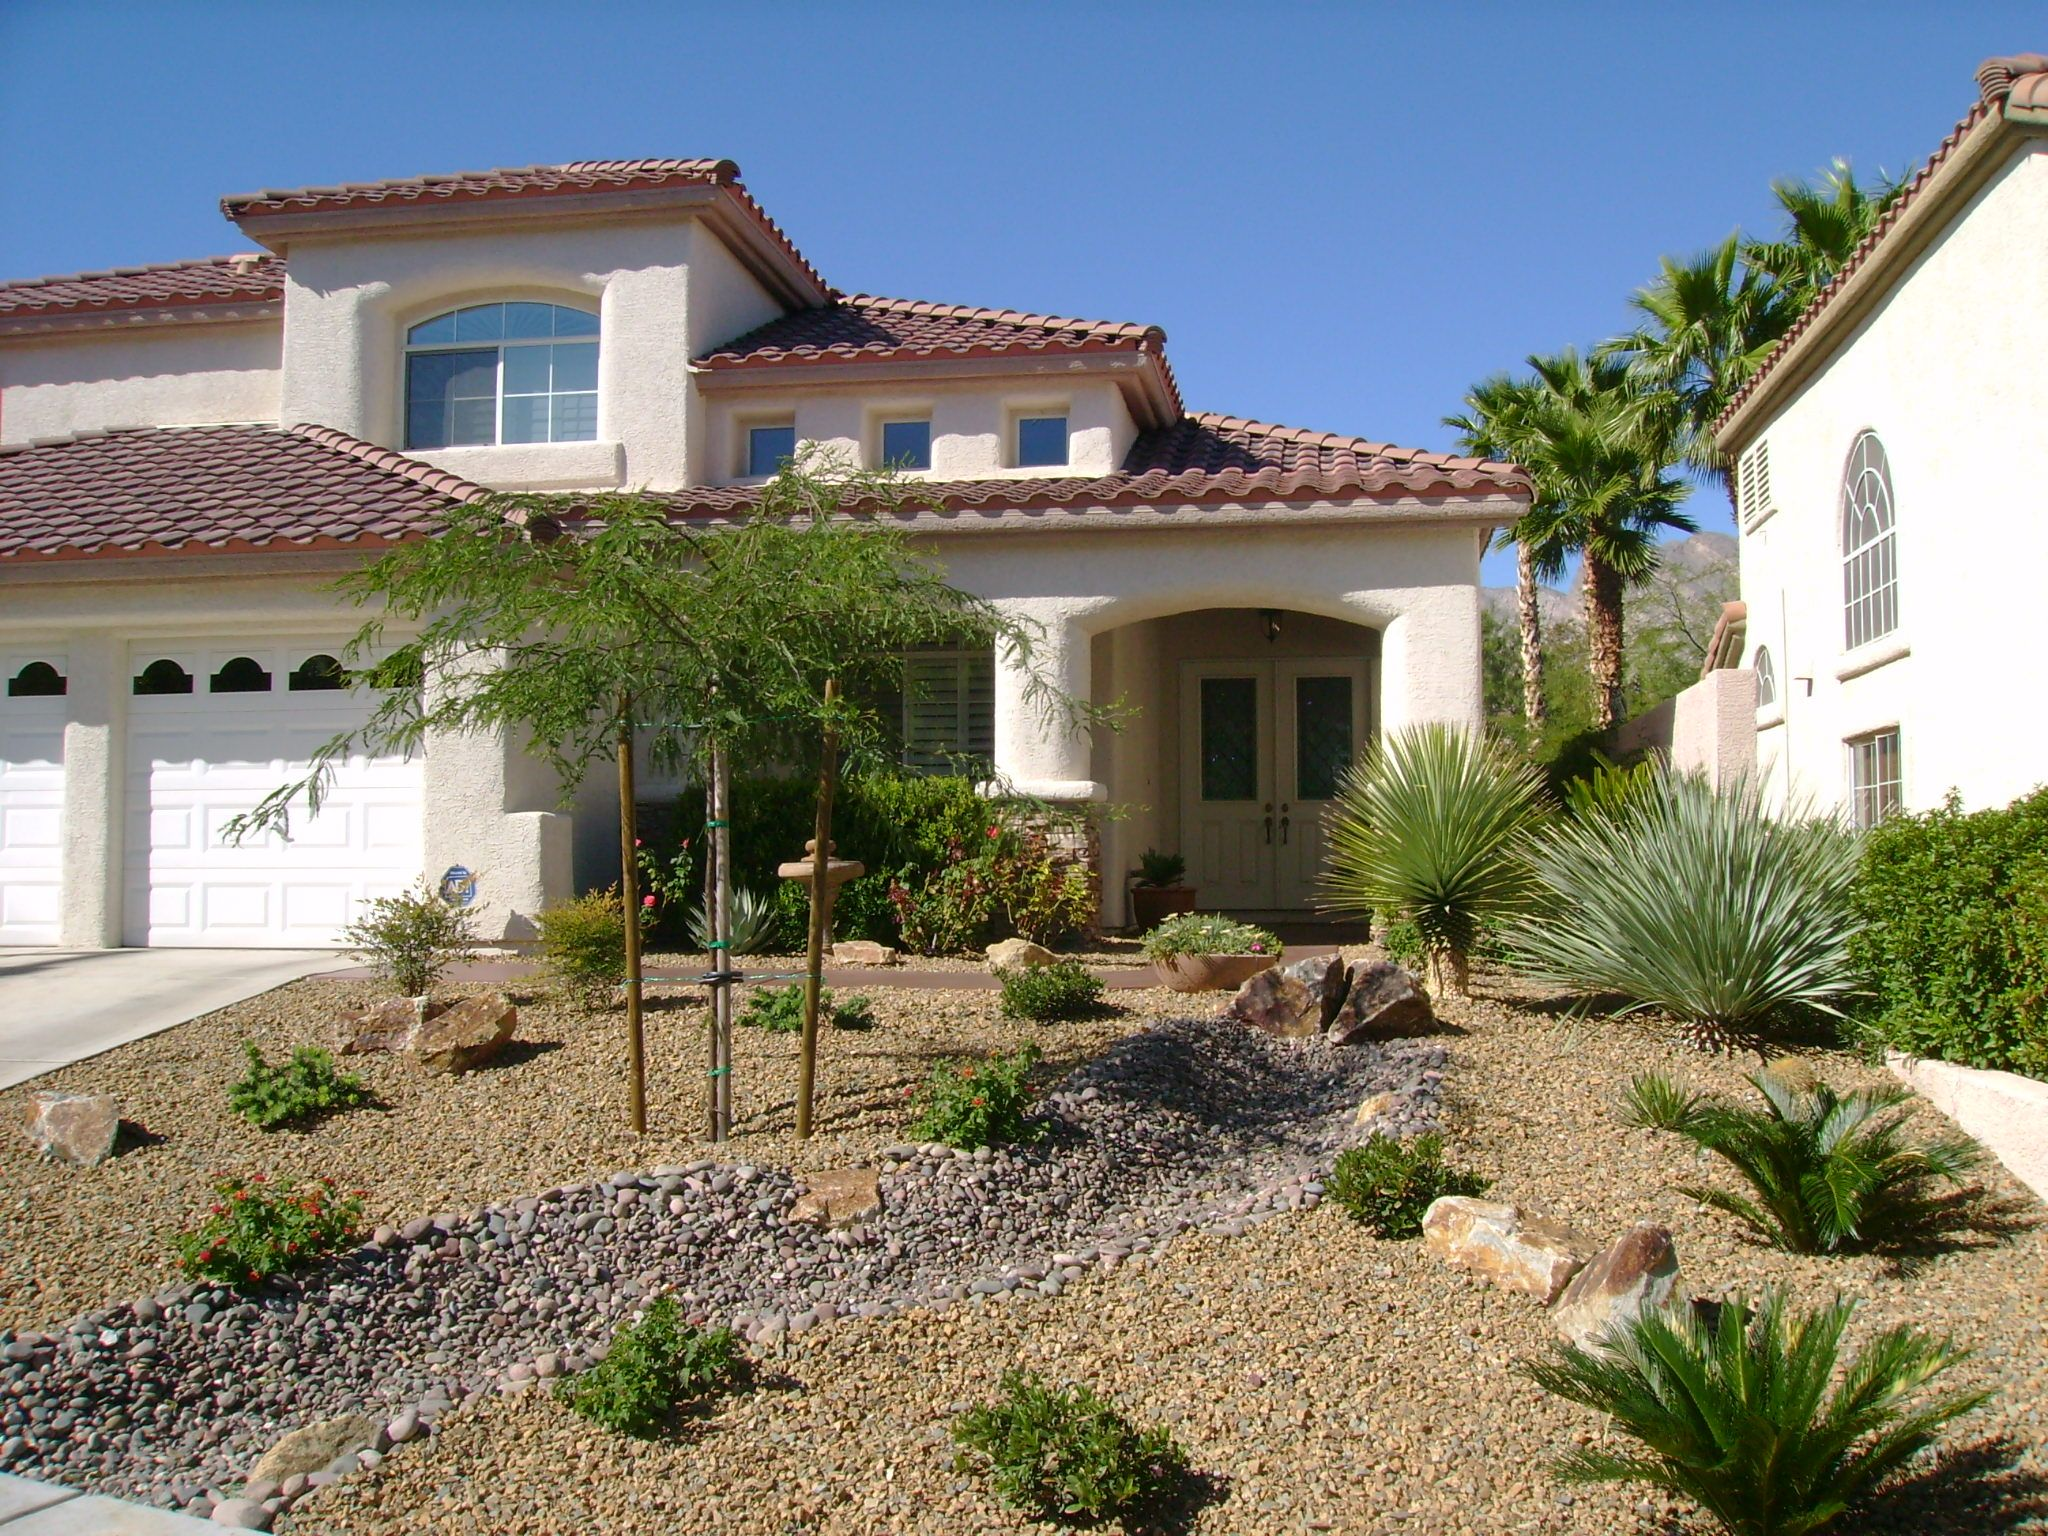 desert landscape design brilliant design desert landscape design with grass grass to desert landscaping backyard garden ideas